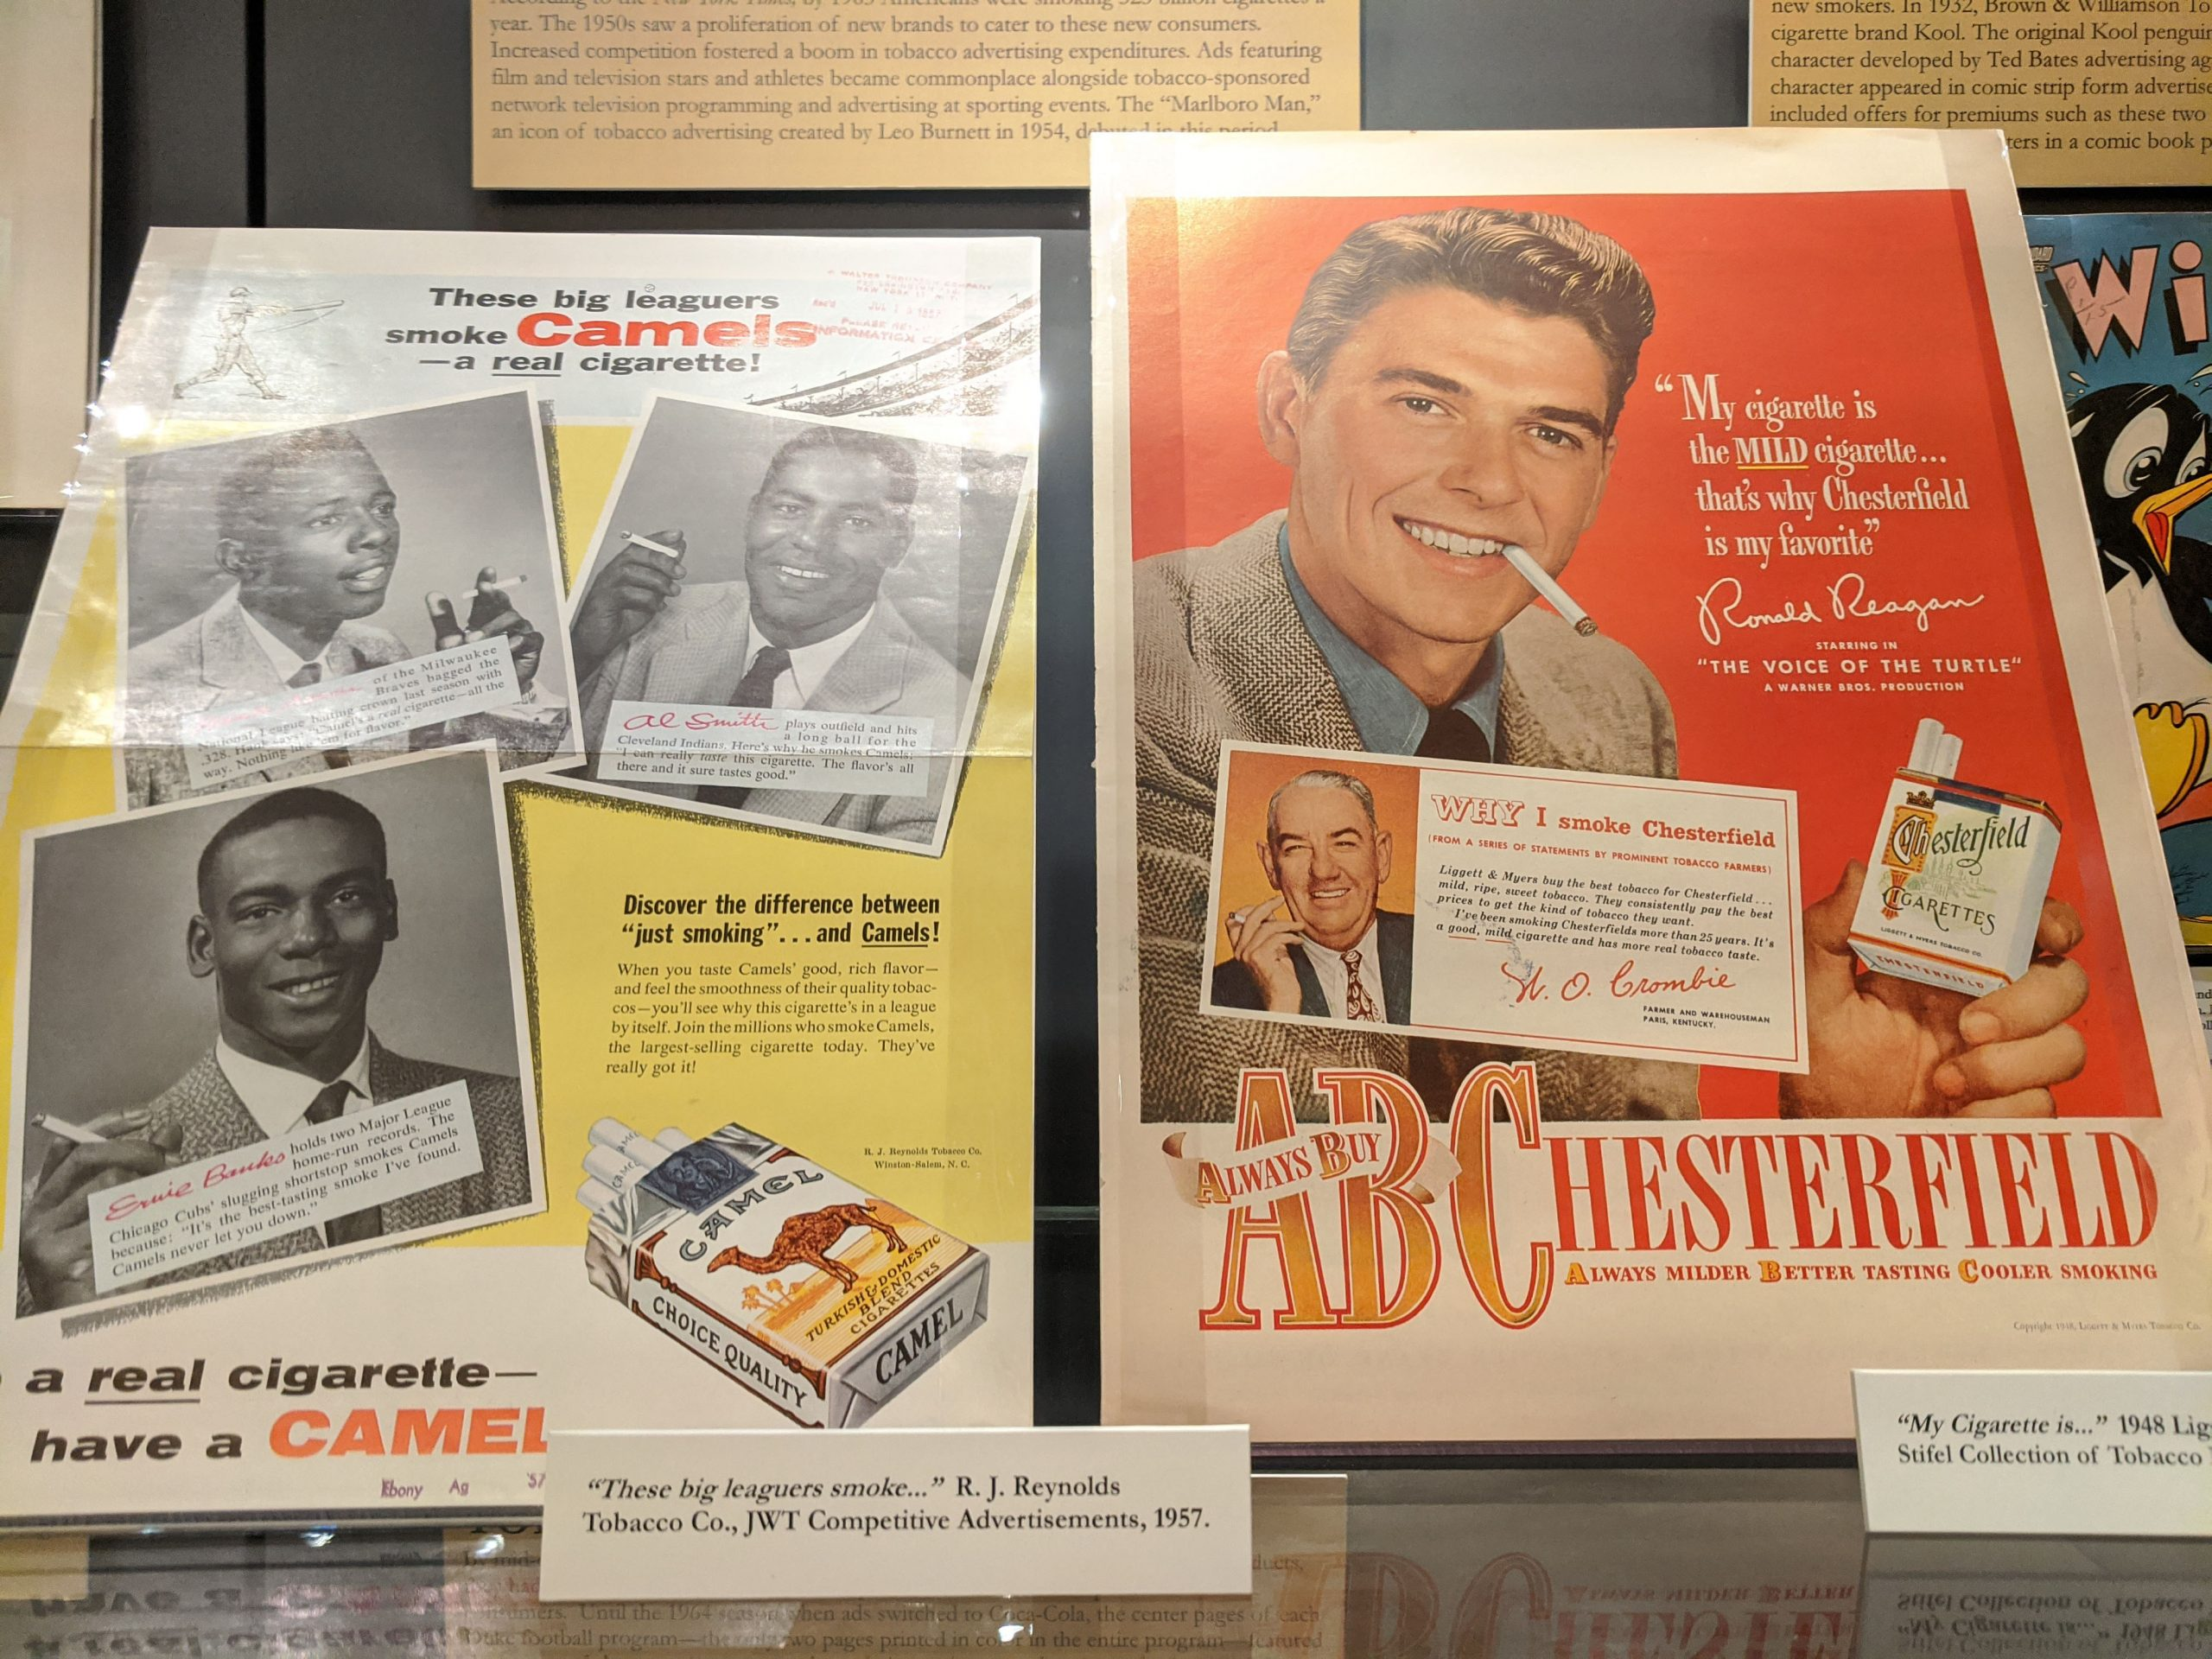 Image of 1950s tobacco advertisements